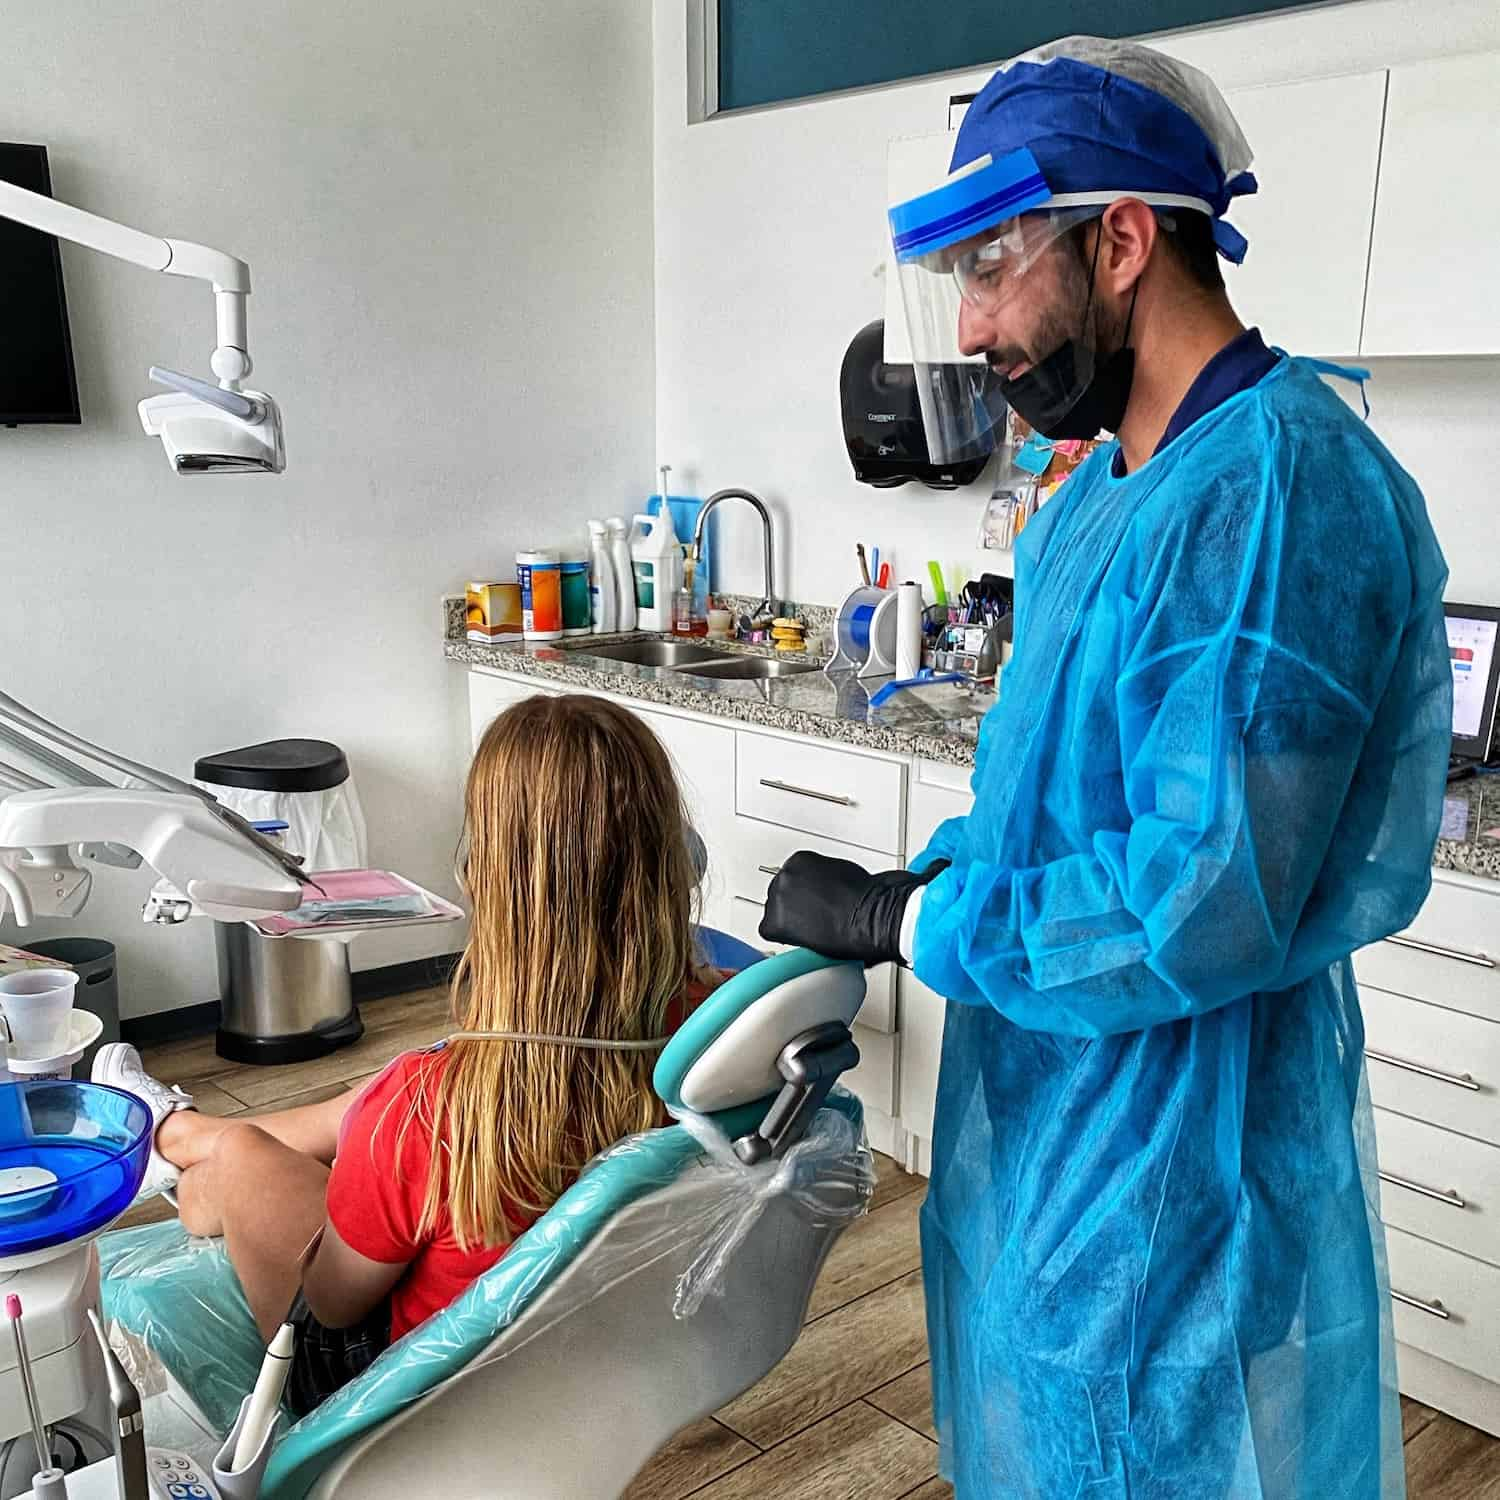 If you live in Costa Rica and need dental care, now is the time to get it!